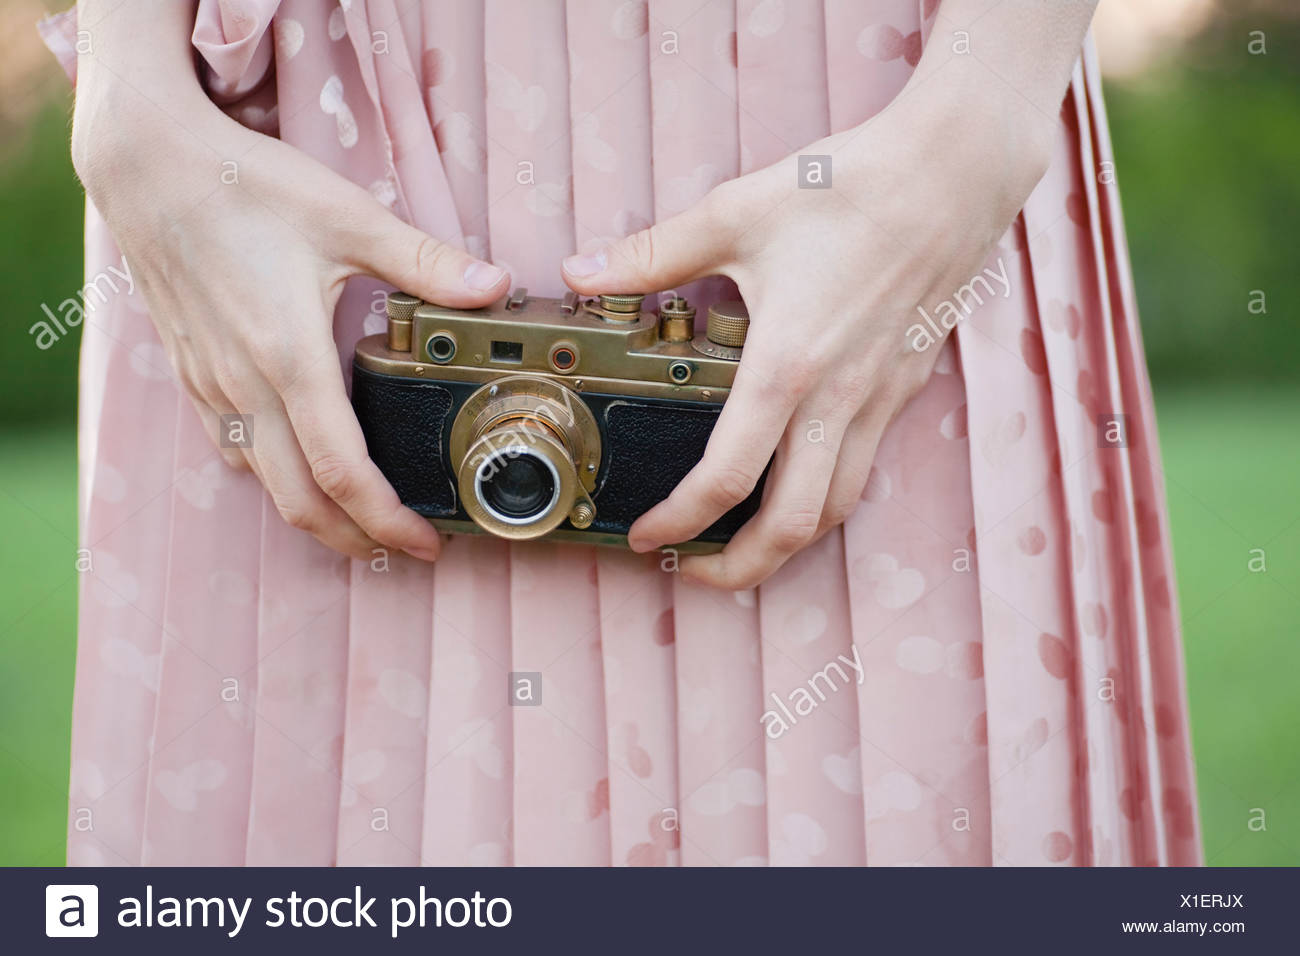 Russia, Voronezh, midsection of woman holding old camera Stock Photo